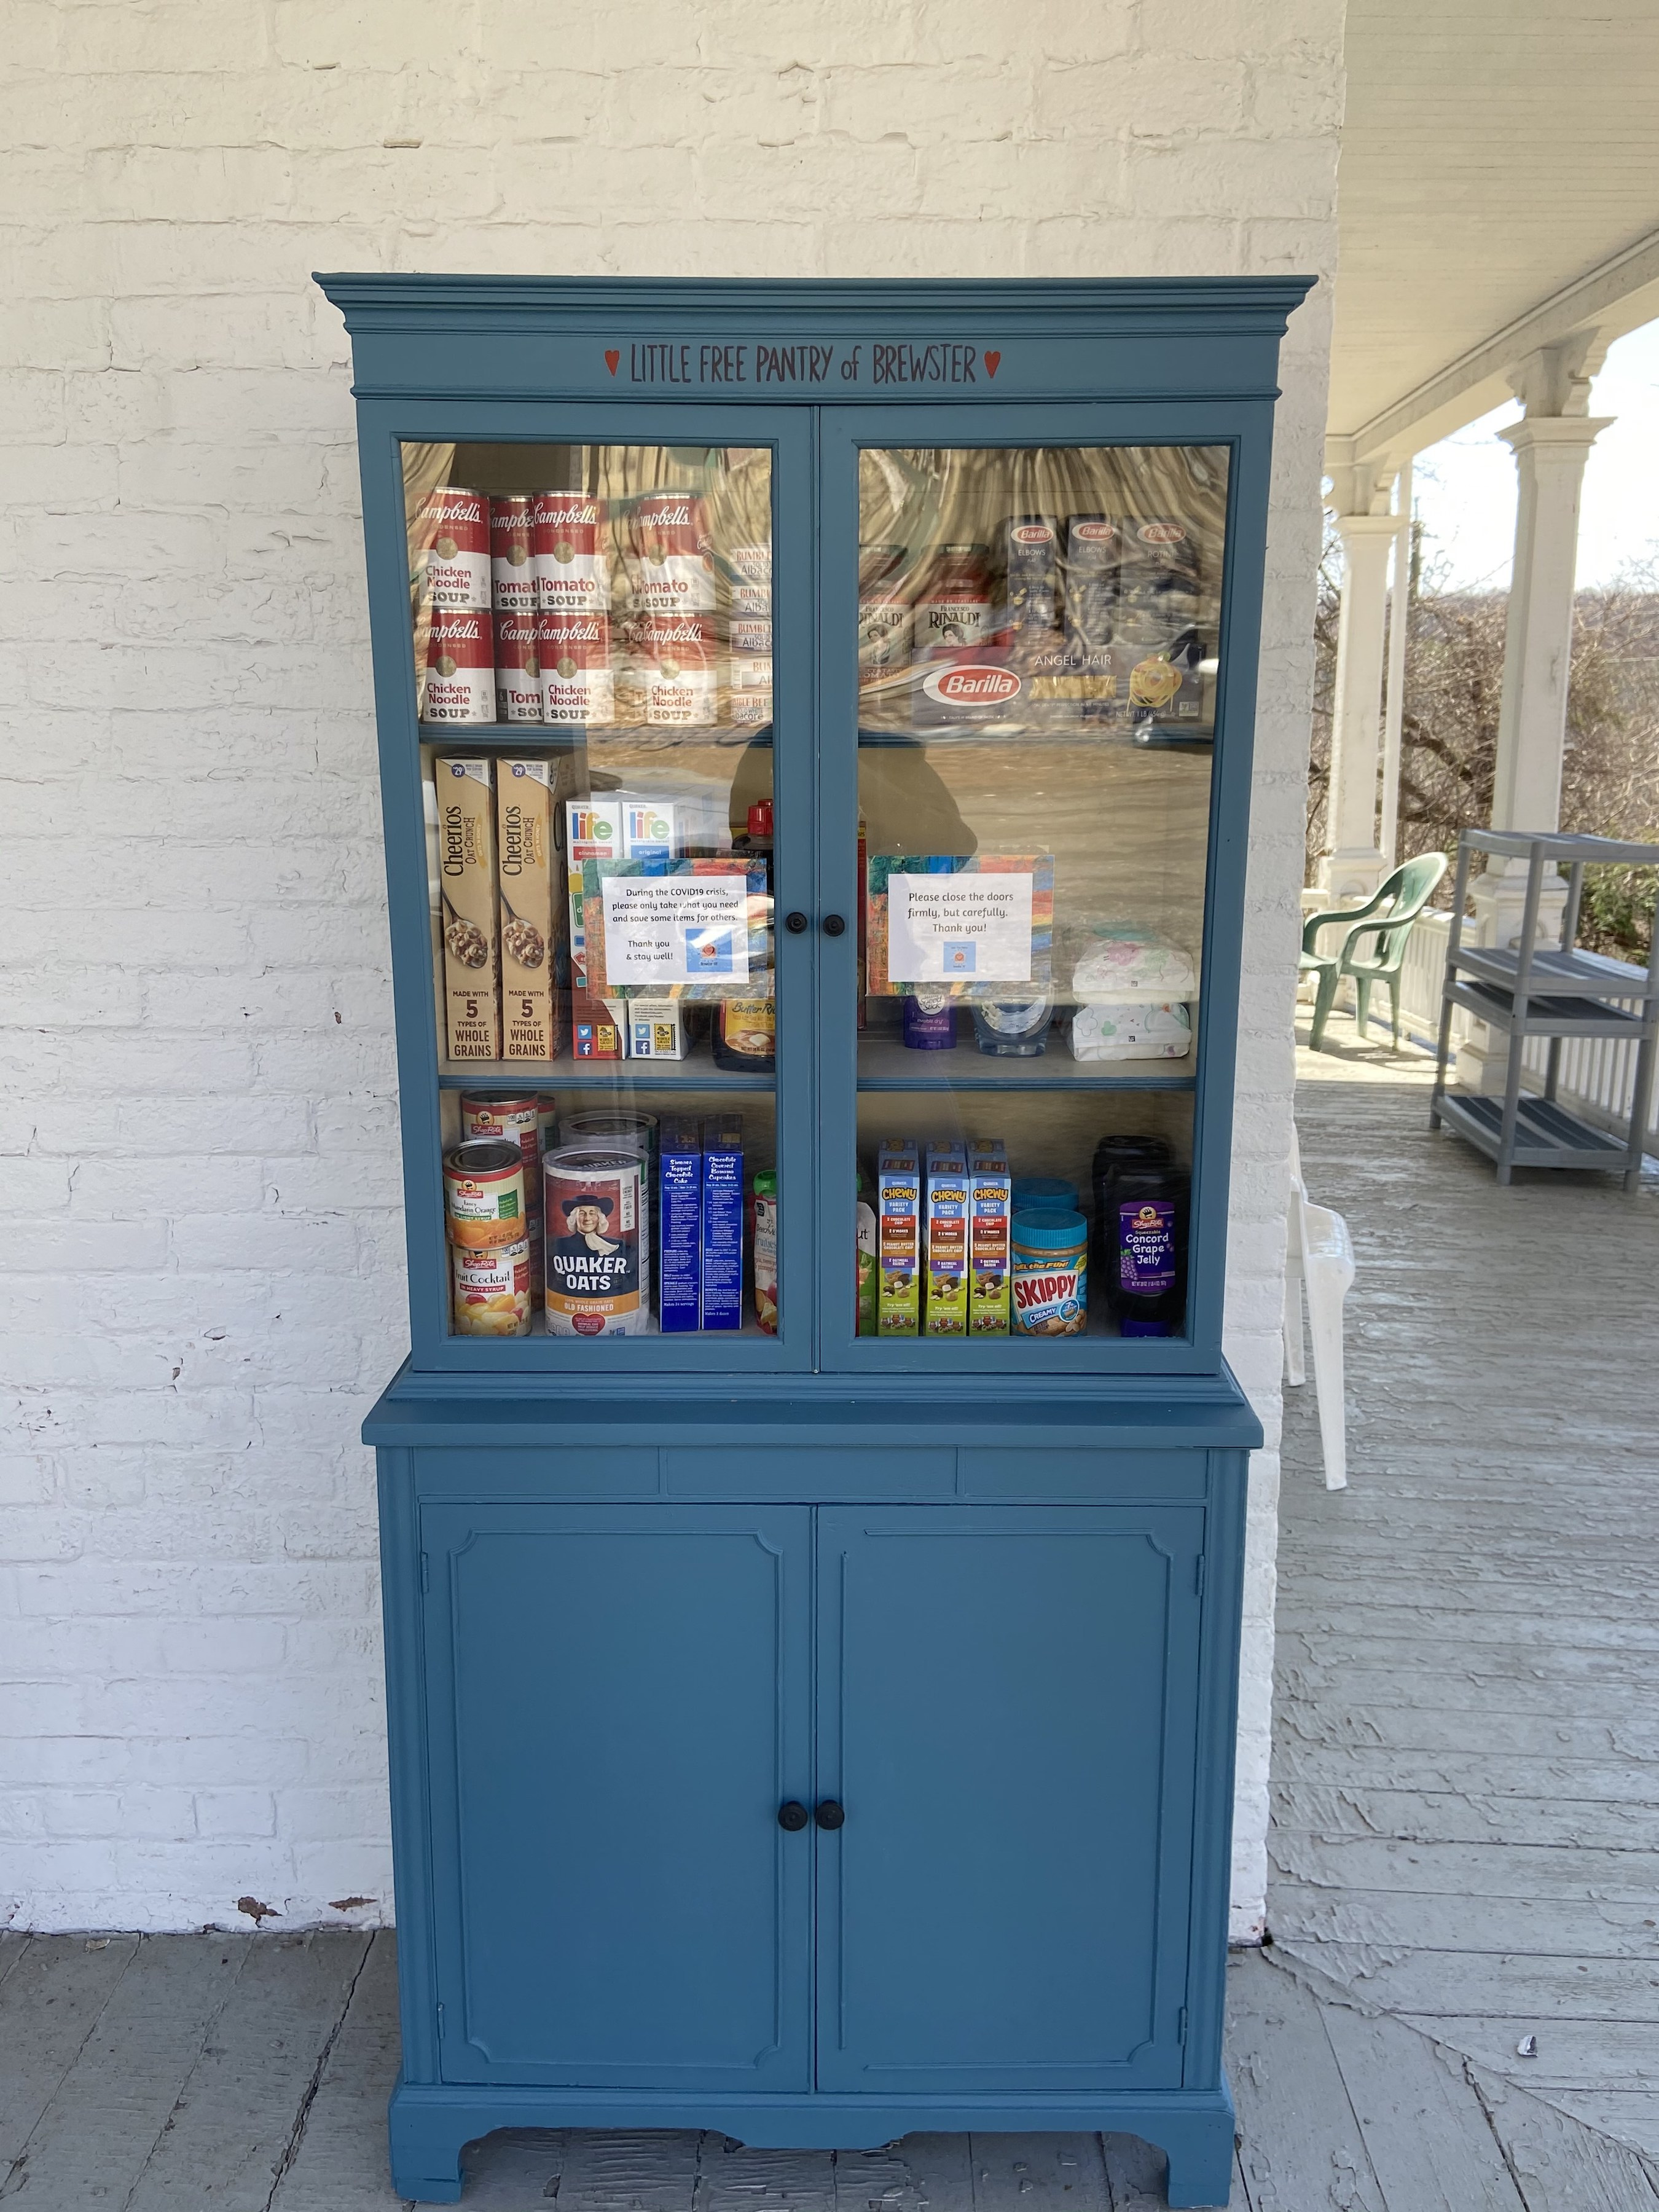 Little Free Pantry Brewster NY Photo 1